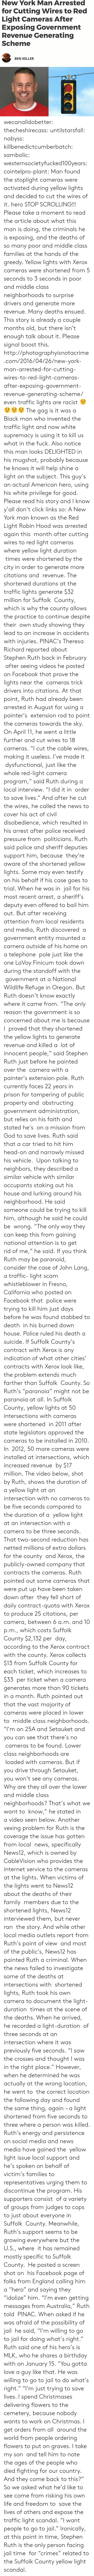 duration: New York Man Arrested  for Cutting Wires to Red  Light Cameras After  Exposing Government  Revenue Generating  Scheme  BEN KELLER wecanalldobetter: thecheshirecass:  untilstarsfall:   nabyss:  killbenedictcumberbatch:  sambolic:  westernsocietyfucked100years:  cointelpro-plant: Man found the stoplight cameras were activated during yellow lights and decided to cut the wires of it. hero  STOP SCROLLING!!! Please take a moment to read the article about what this man is doing, the criminals he is exposing, and the deaths of so many poor and middle class families at the hands of the greedy. Yellow lights with Xerox cameras were shortened from 5 seconds to 3 seconds in poor and middle class neighborhoods to surprise drivers and generate more revenue. Many deaths ensued. This story is already a couple months old, but there isn't enough talk about it. Please signal boost this. http://photographyisnotacrime.com/2016/04/26/new-york-man-arrested-for-cutting-wires-to-red-light-cameras-after-exposing-government-revenue-generating-scheme/   even traffic lights are racist  😧😧😧😧  The gag is it was a Black man who invented the traffic light and now white supremacy is using it to kill us what in the fuck.   Also notice this man looks DELIGHTED in his mugshot, probably because he knows it will help shine a light on the subject.  This guy's an actual American hero, using his white privilege for good. Please read his story and I know y'all don't click links so:  A New York man known as the Red Light Robin Hood was arrested again this month after cutting wires to red light cameras where yellow light duration times were shortened by the city in order to generate more citations and revenue.  The shortened durations at the traffic lights generate $32 million for Suffolk County, which is why the county allows the practice to continue despite their own study showing they lead to an increase in accidents with injuries.  PINAC's Theresa Richard reported about Stephen Ruth back in Febr